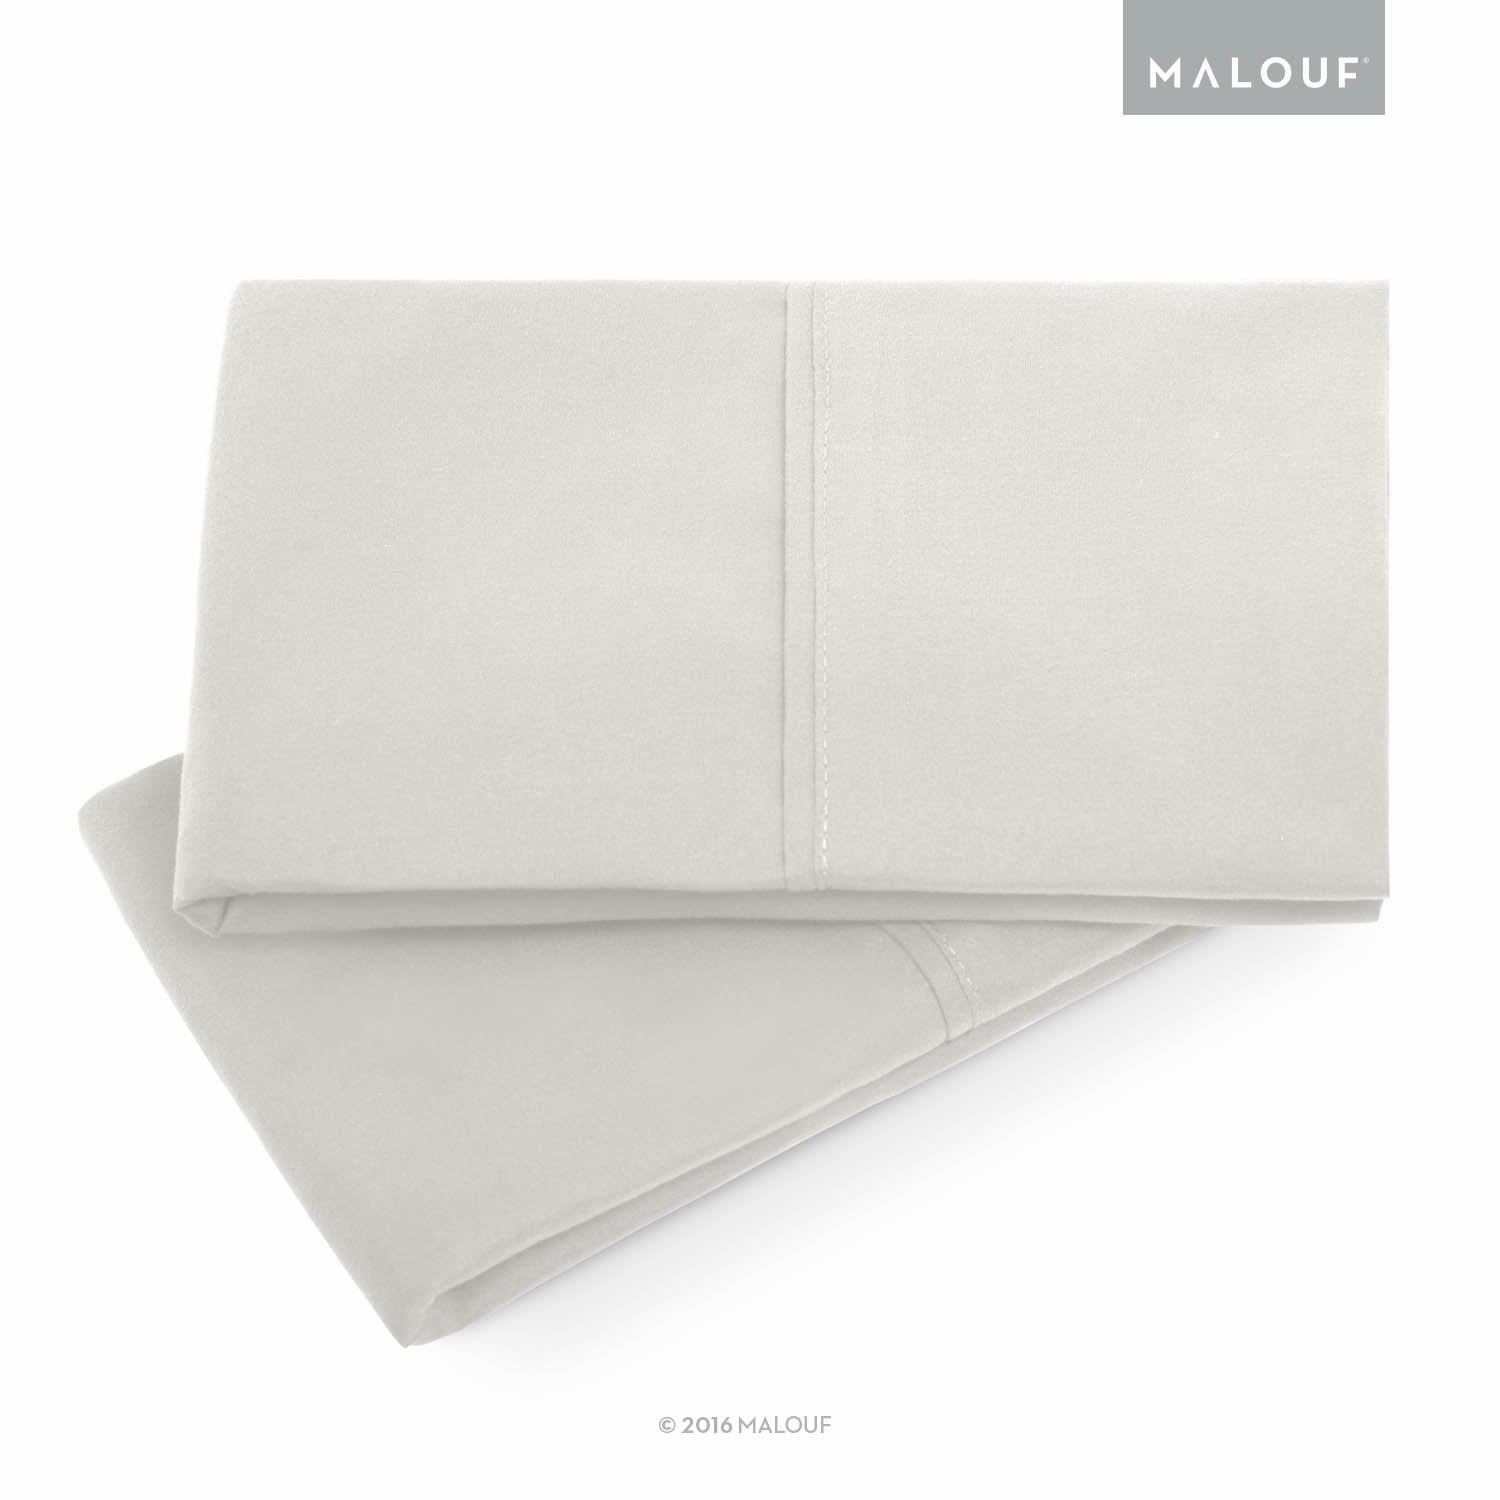 MALOUF Double Brushed Microfiber Super Soft Luxury Pillowcase Set - Wrinkle Resistant - Standard Pillowcases - Set of 2 - Driftwood